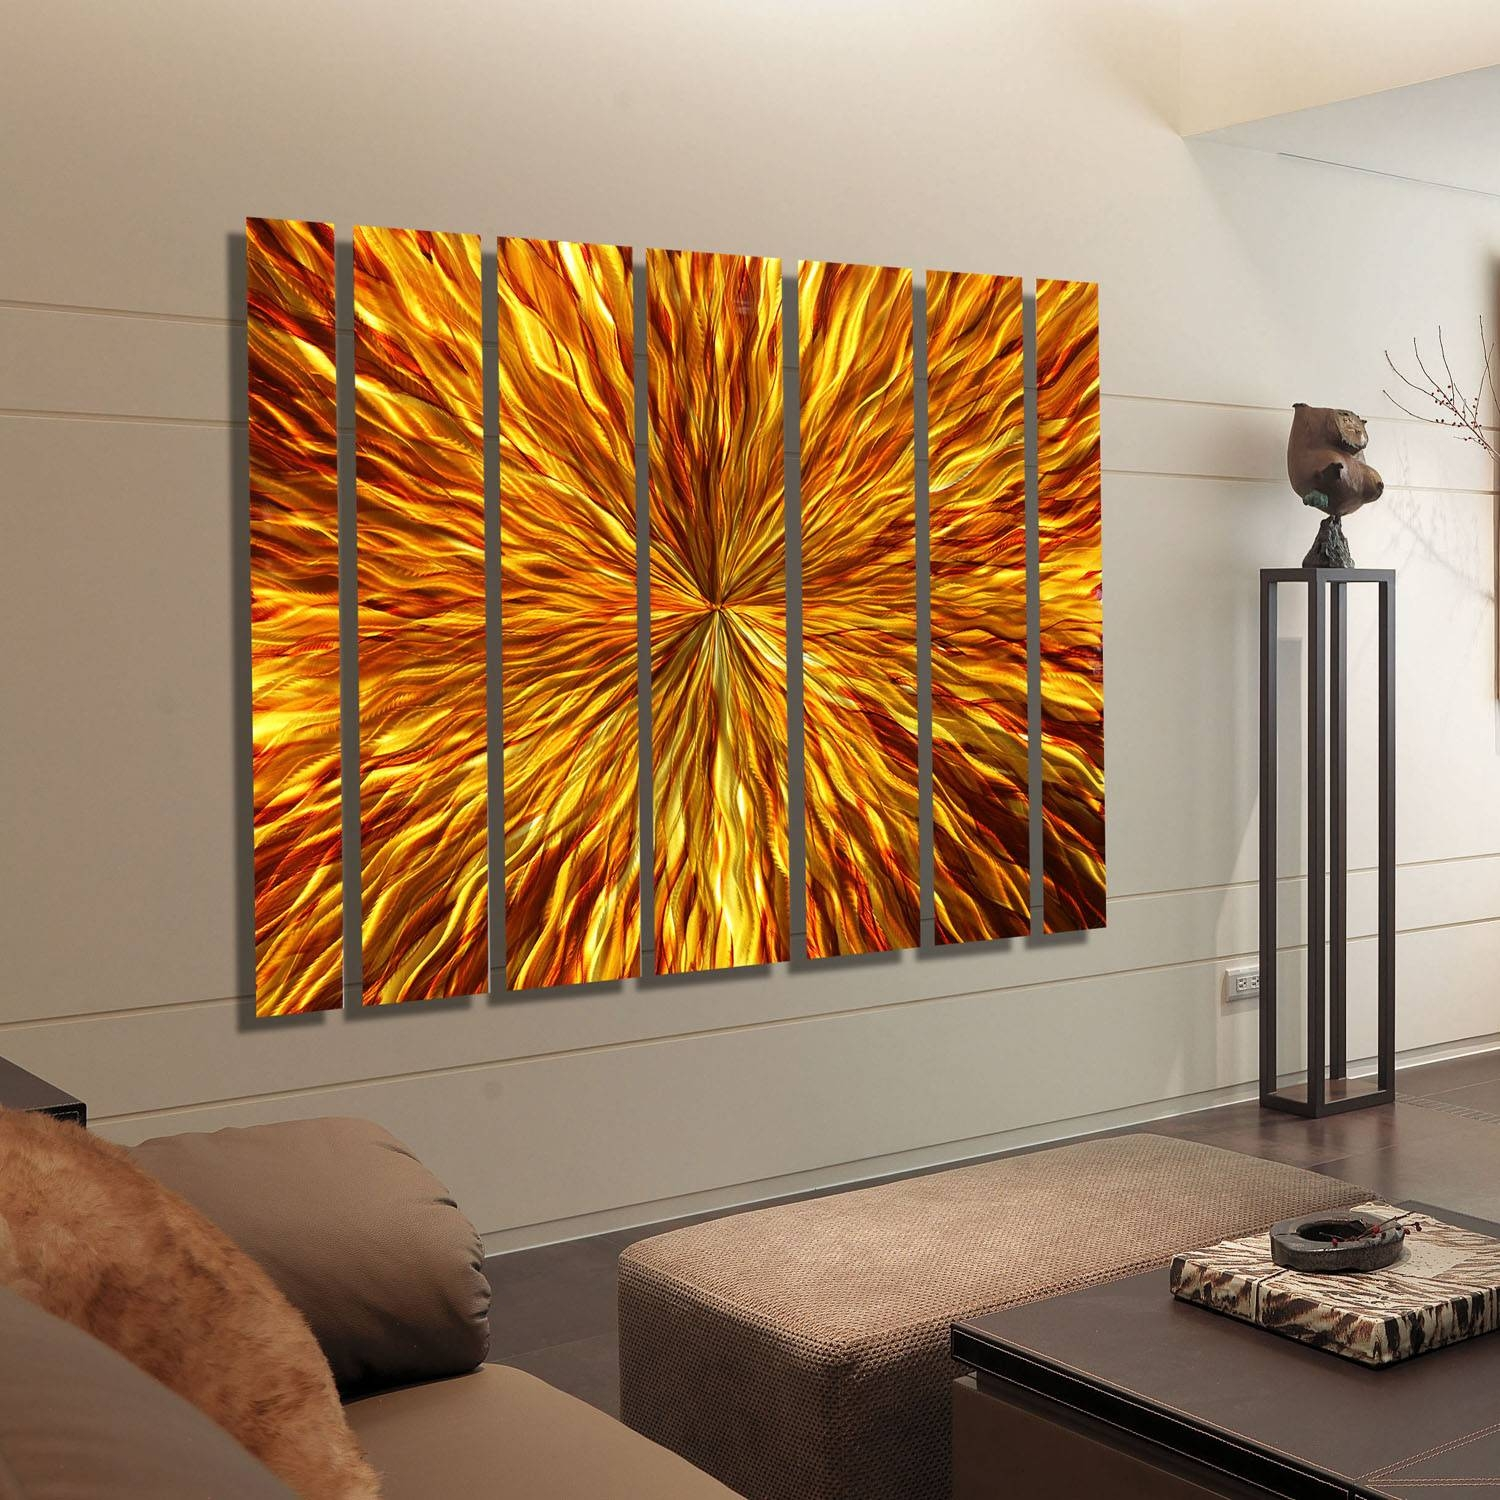 Amber Vortex Xl – Extra Large Modern Metal Wall Artjon Allen Pertaining To Most Recently Released Orange Metal Wall Art (View 10 of 20)